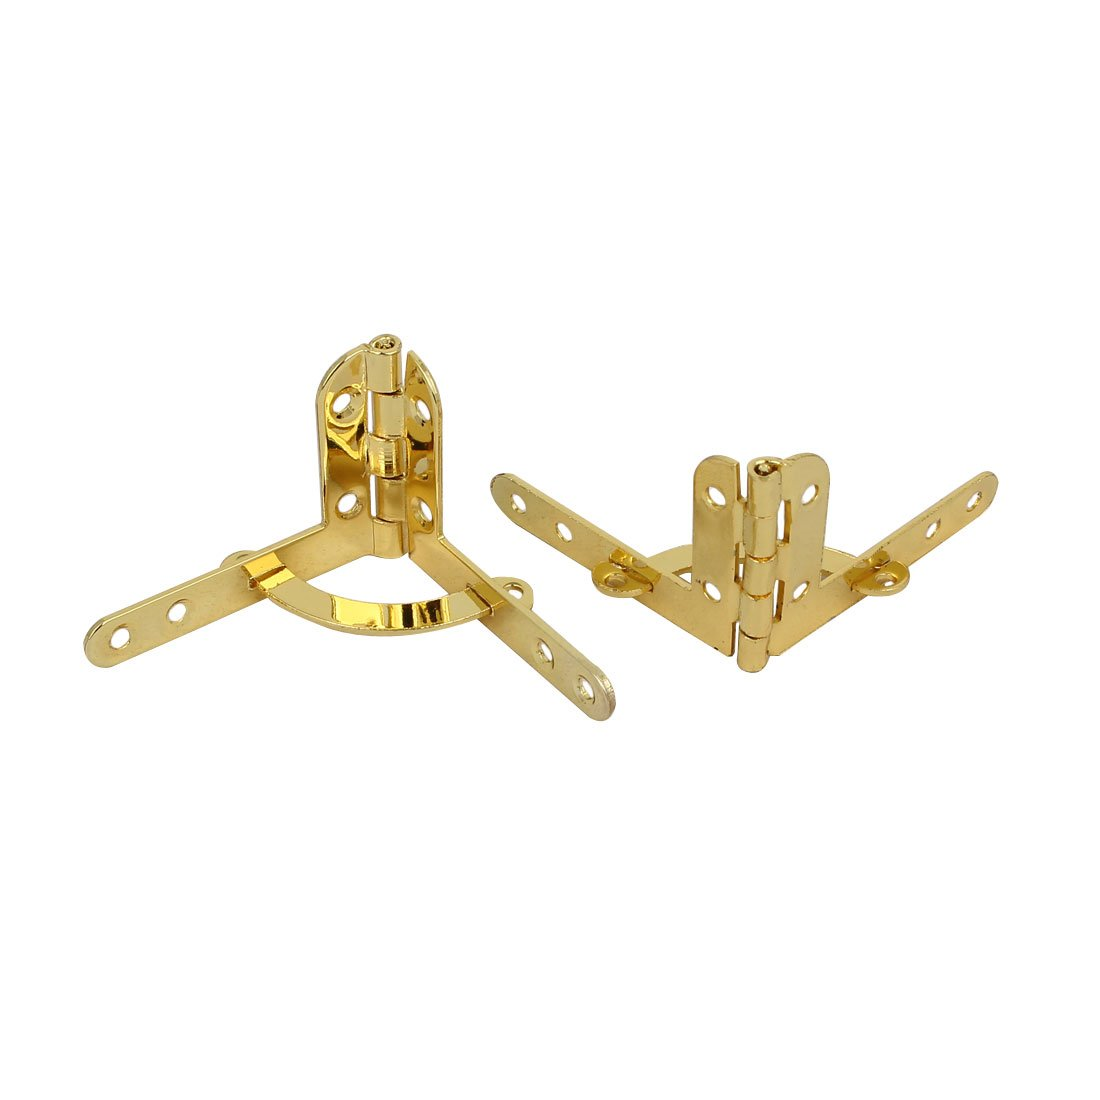 uxcell Jewelry Wine Box Wooden Case 90 Degree Support Spring Hinge Gold Tone 2pcs